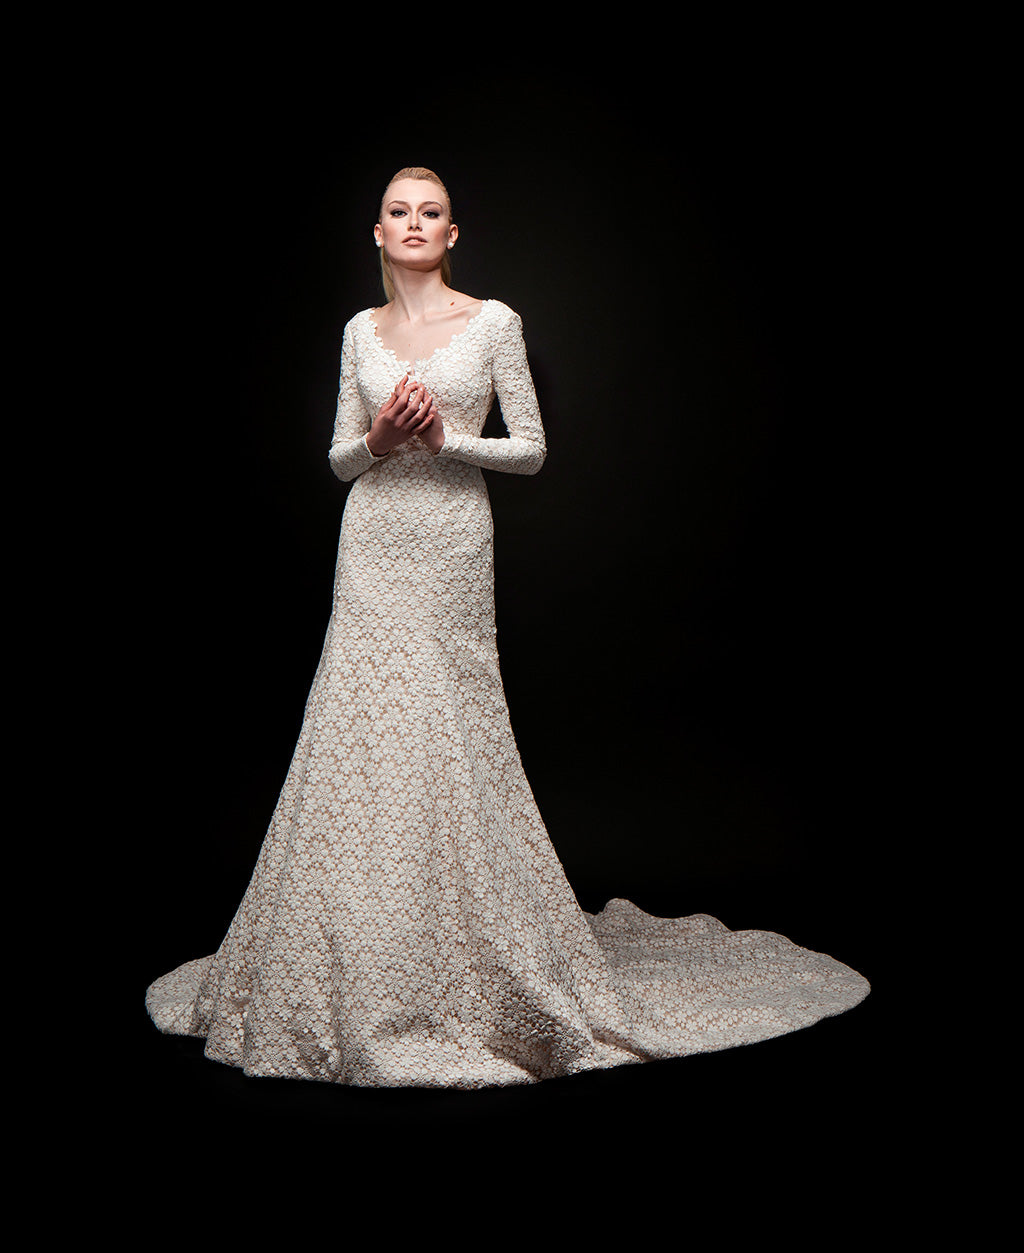 Willa - Lace Long Sleeve Bridal Gown